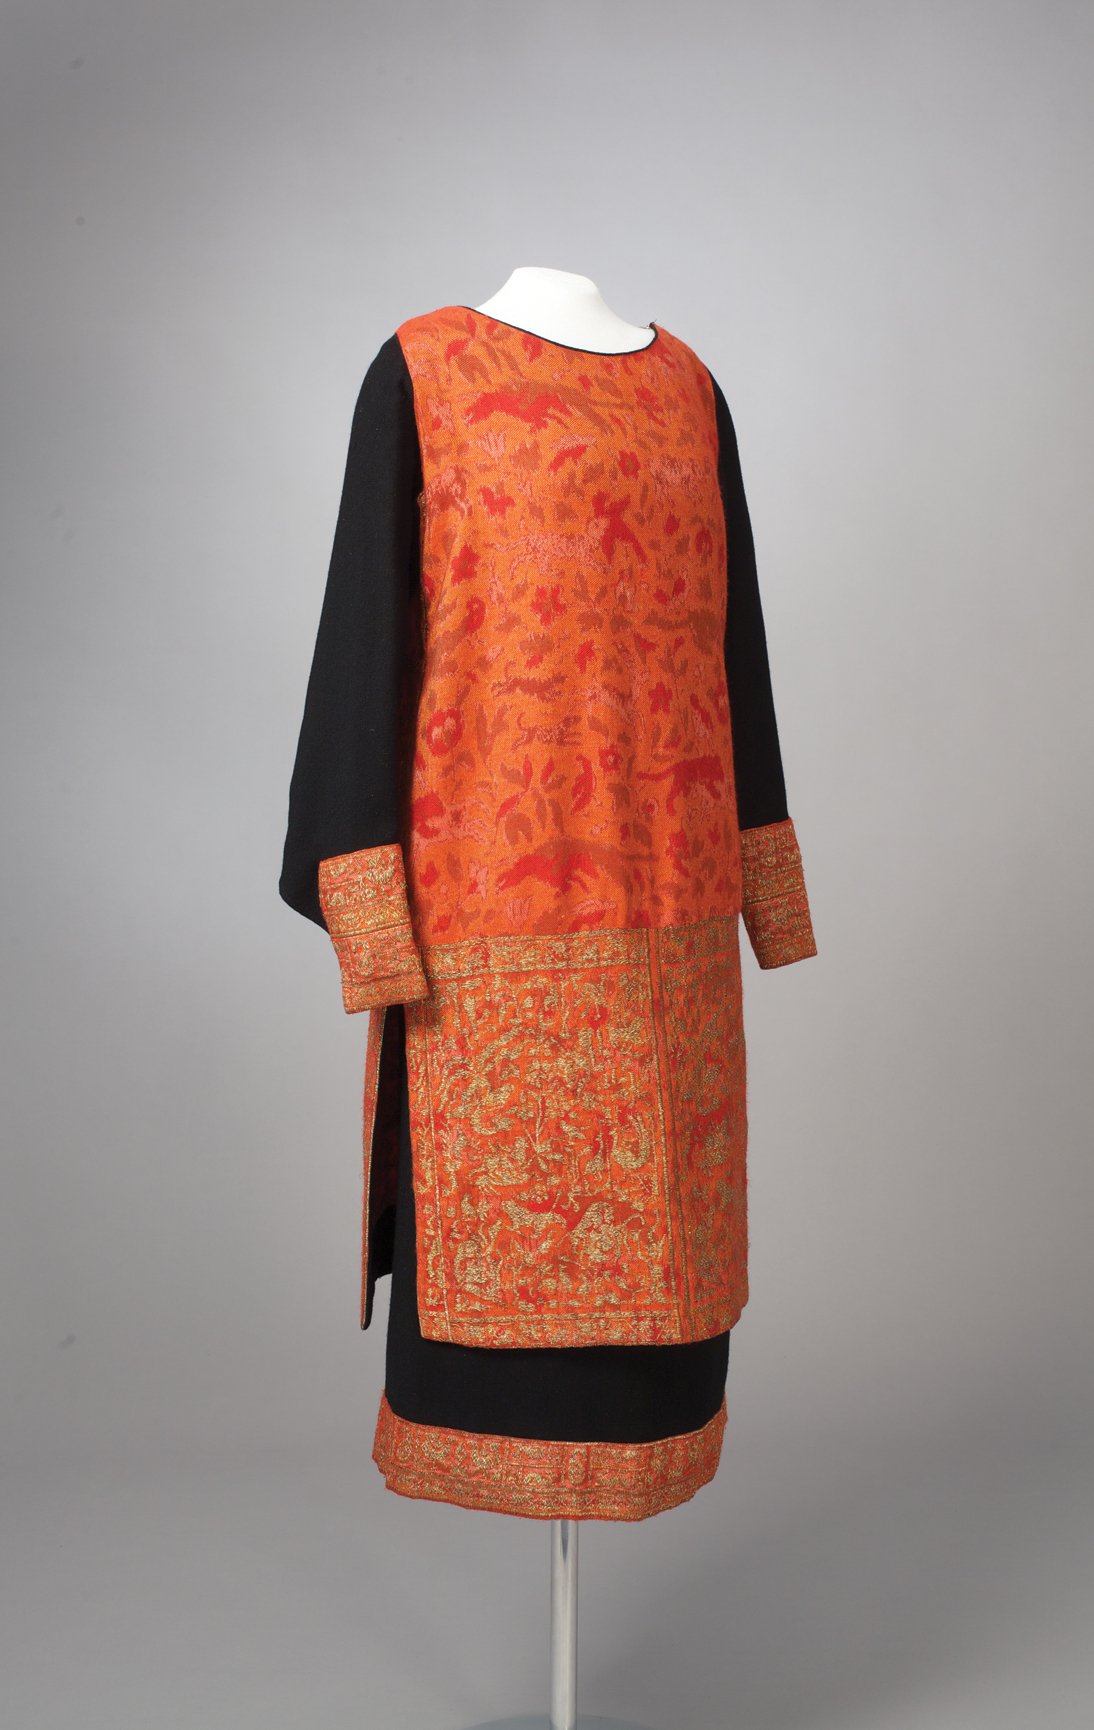 A 2 piece day dress from the french couture house of callot soeurs from their